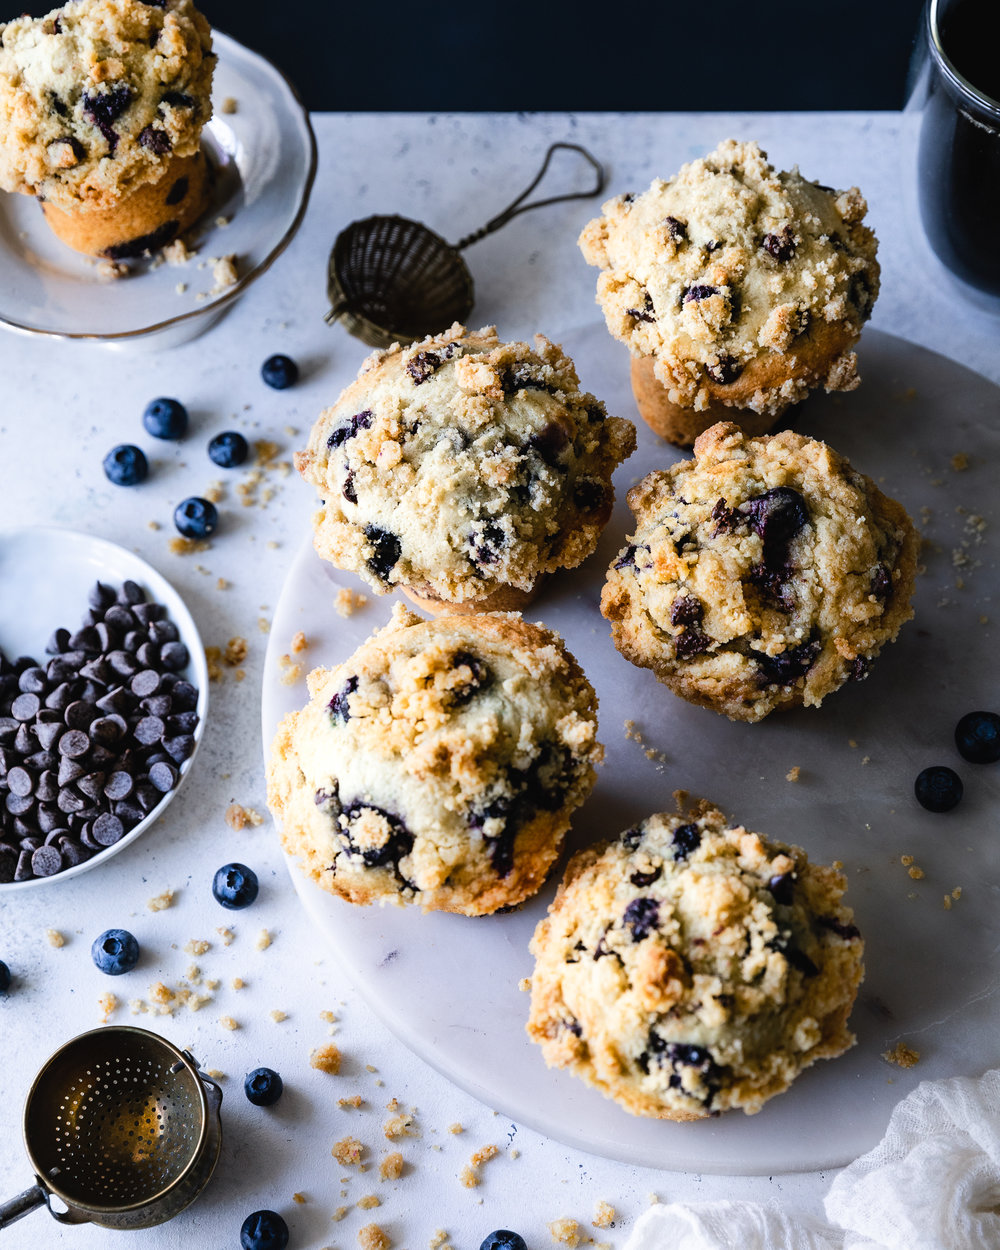 Blueberries & Chocolate Chip Muffins - CrumbRaw sugar – 4 TBSPBrown sugar – 4 TBSPUnbleached all purpose flour – ⅔ cupButter, semi softened – 5 TBSPPinch of fine sea saltMuffin batterSemi-sweet chocolate chips – 1 ½ cupUnbleached all purpose flour – 2 ½ flour + 1 ½ TBSPBlueberries, preferably frozen (see notes) – 1 ½ cupAlmond flour – ½ flourBaking powder – 4 TspFine sea salt – 1 TspRaw sugar – 1 cupOrganic free range eggs – 2Ricotta cheese – ½ cupVegetable oil – ½ cupCoconut milk – 1 cupPure vanilla extract - 1 Tsp